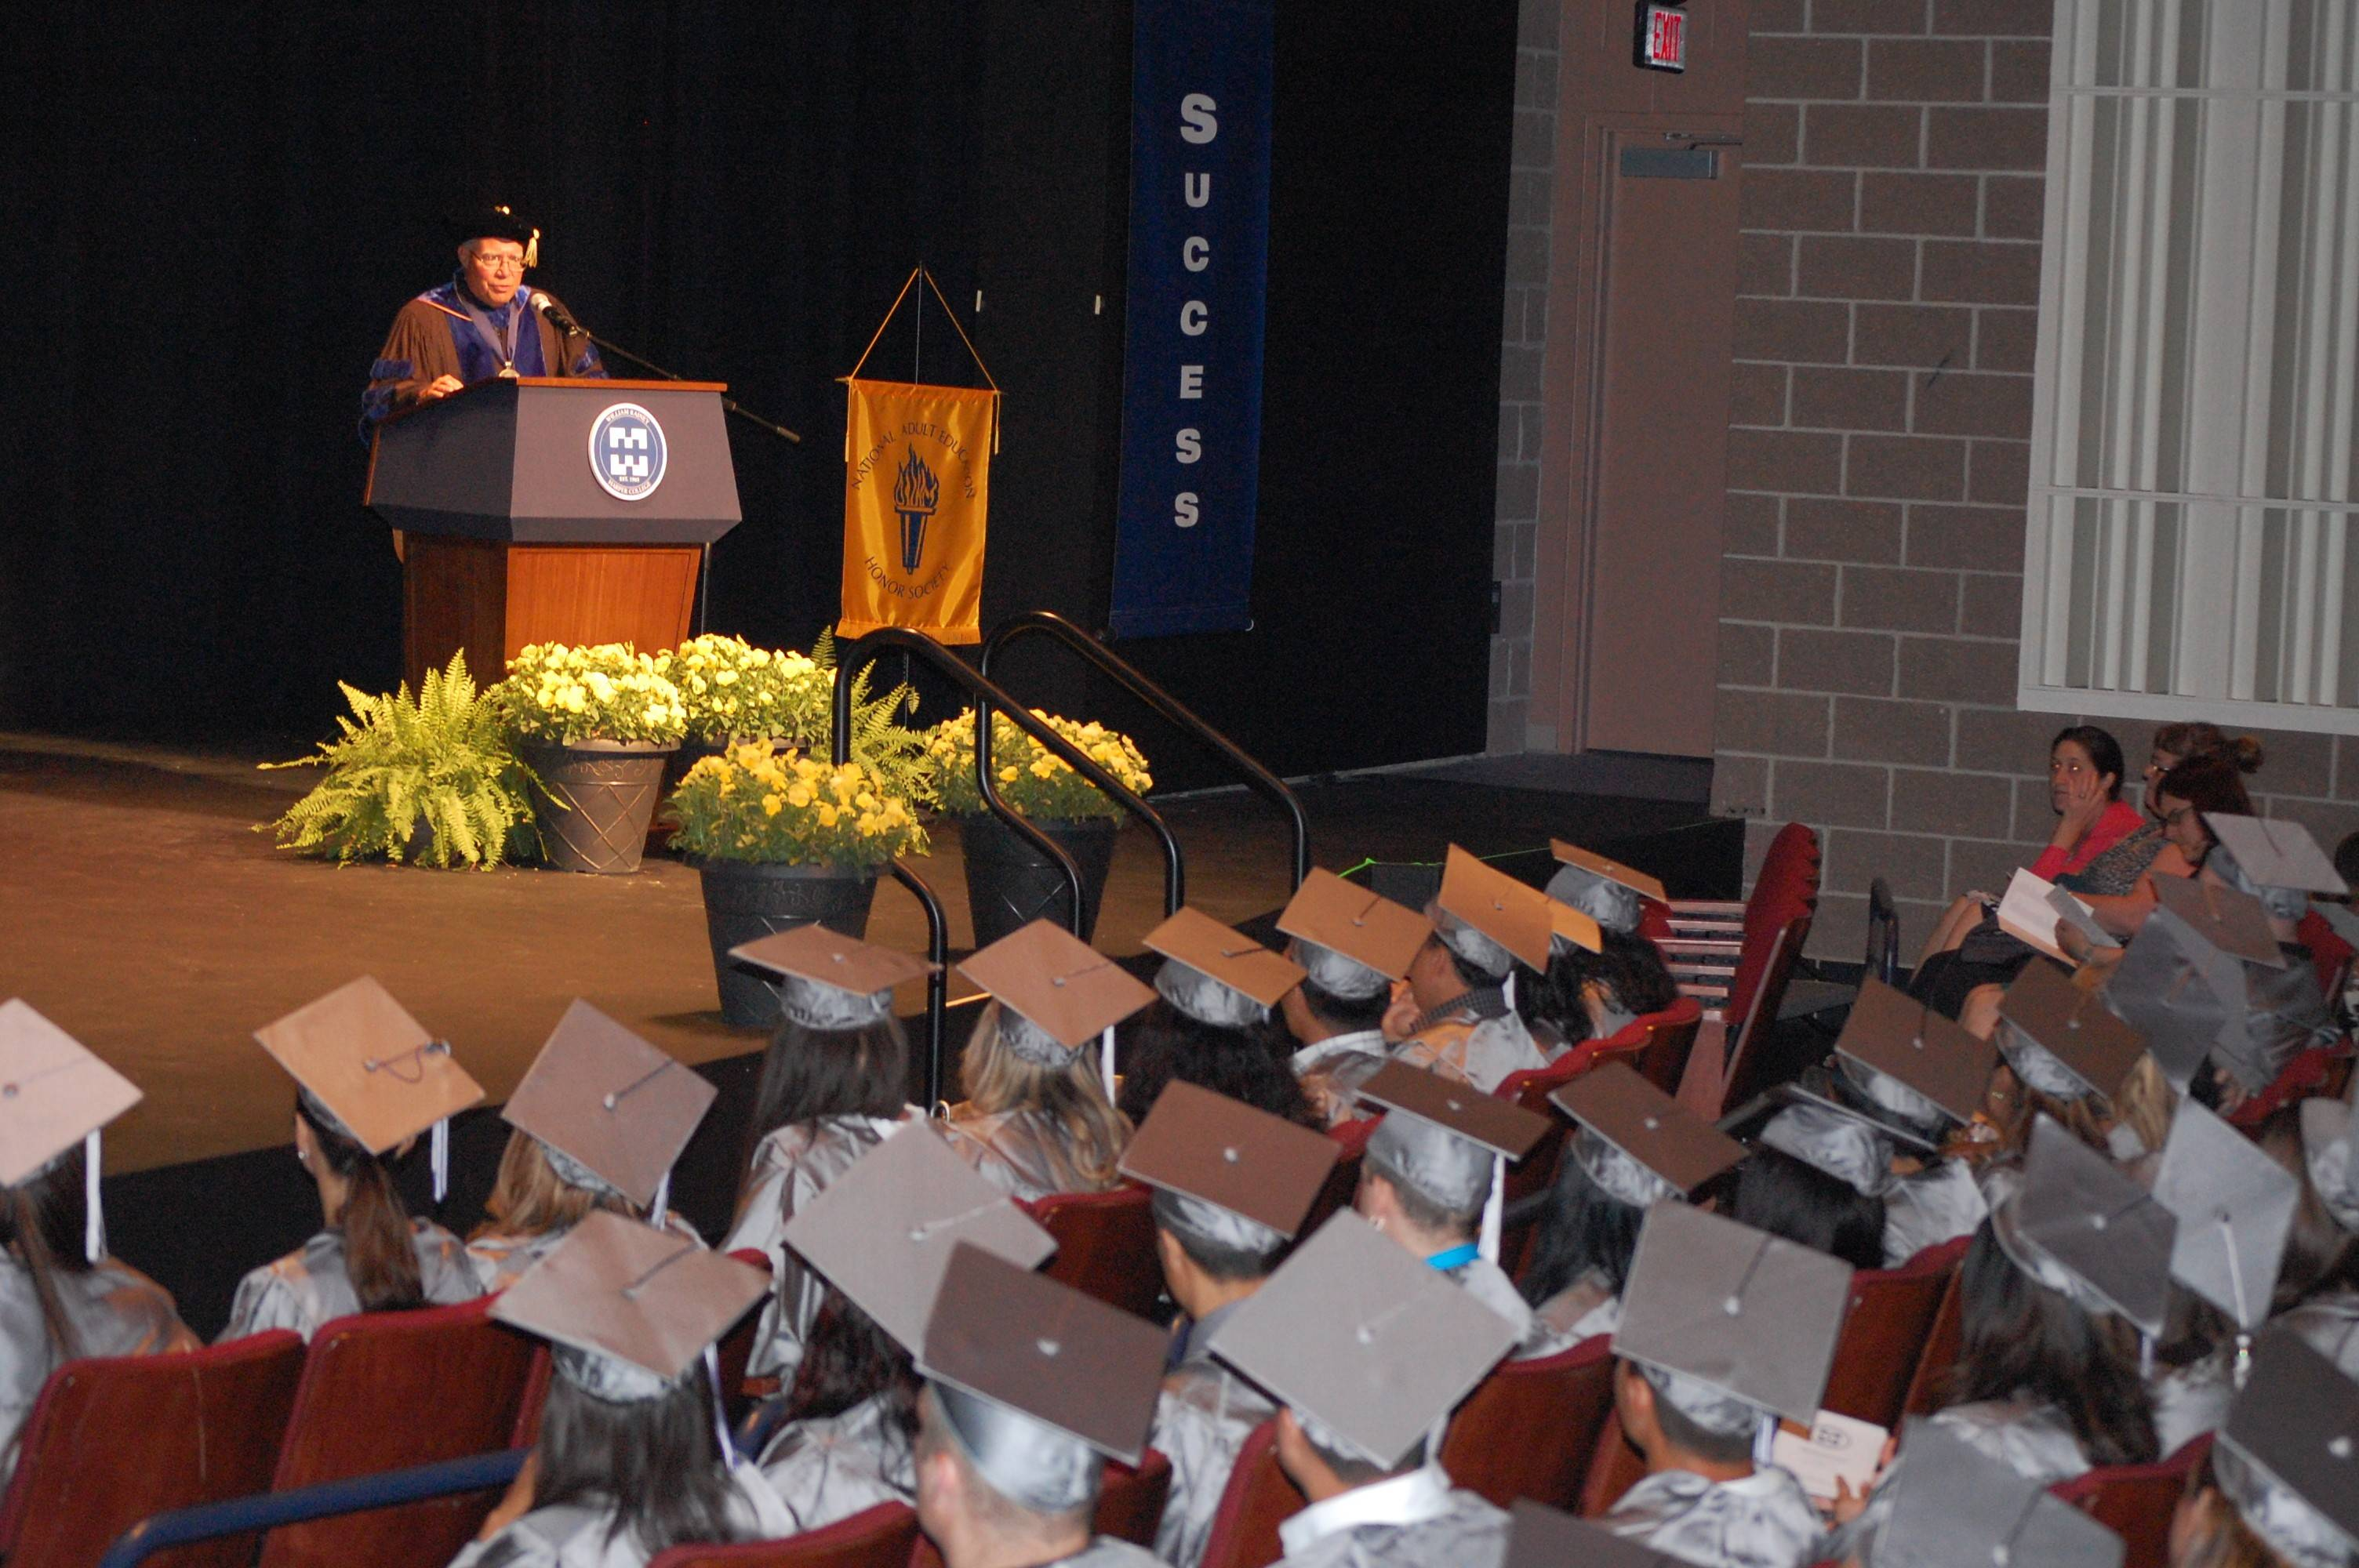 Harper College President Kenneth Ender speaks to the crowd at the college's GED graduation ceremony.